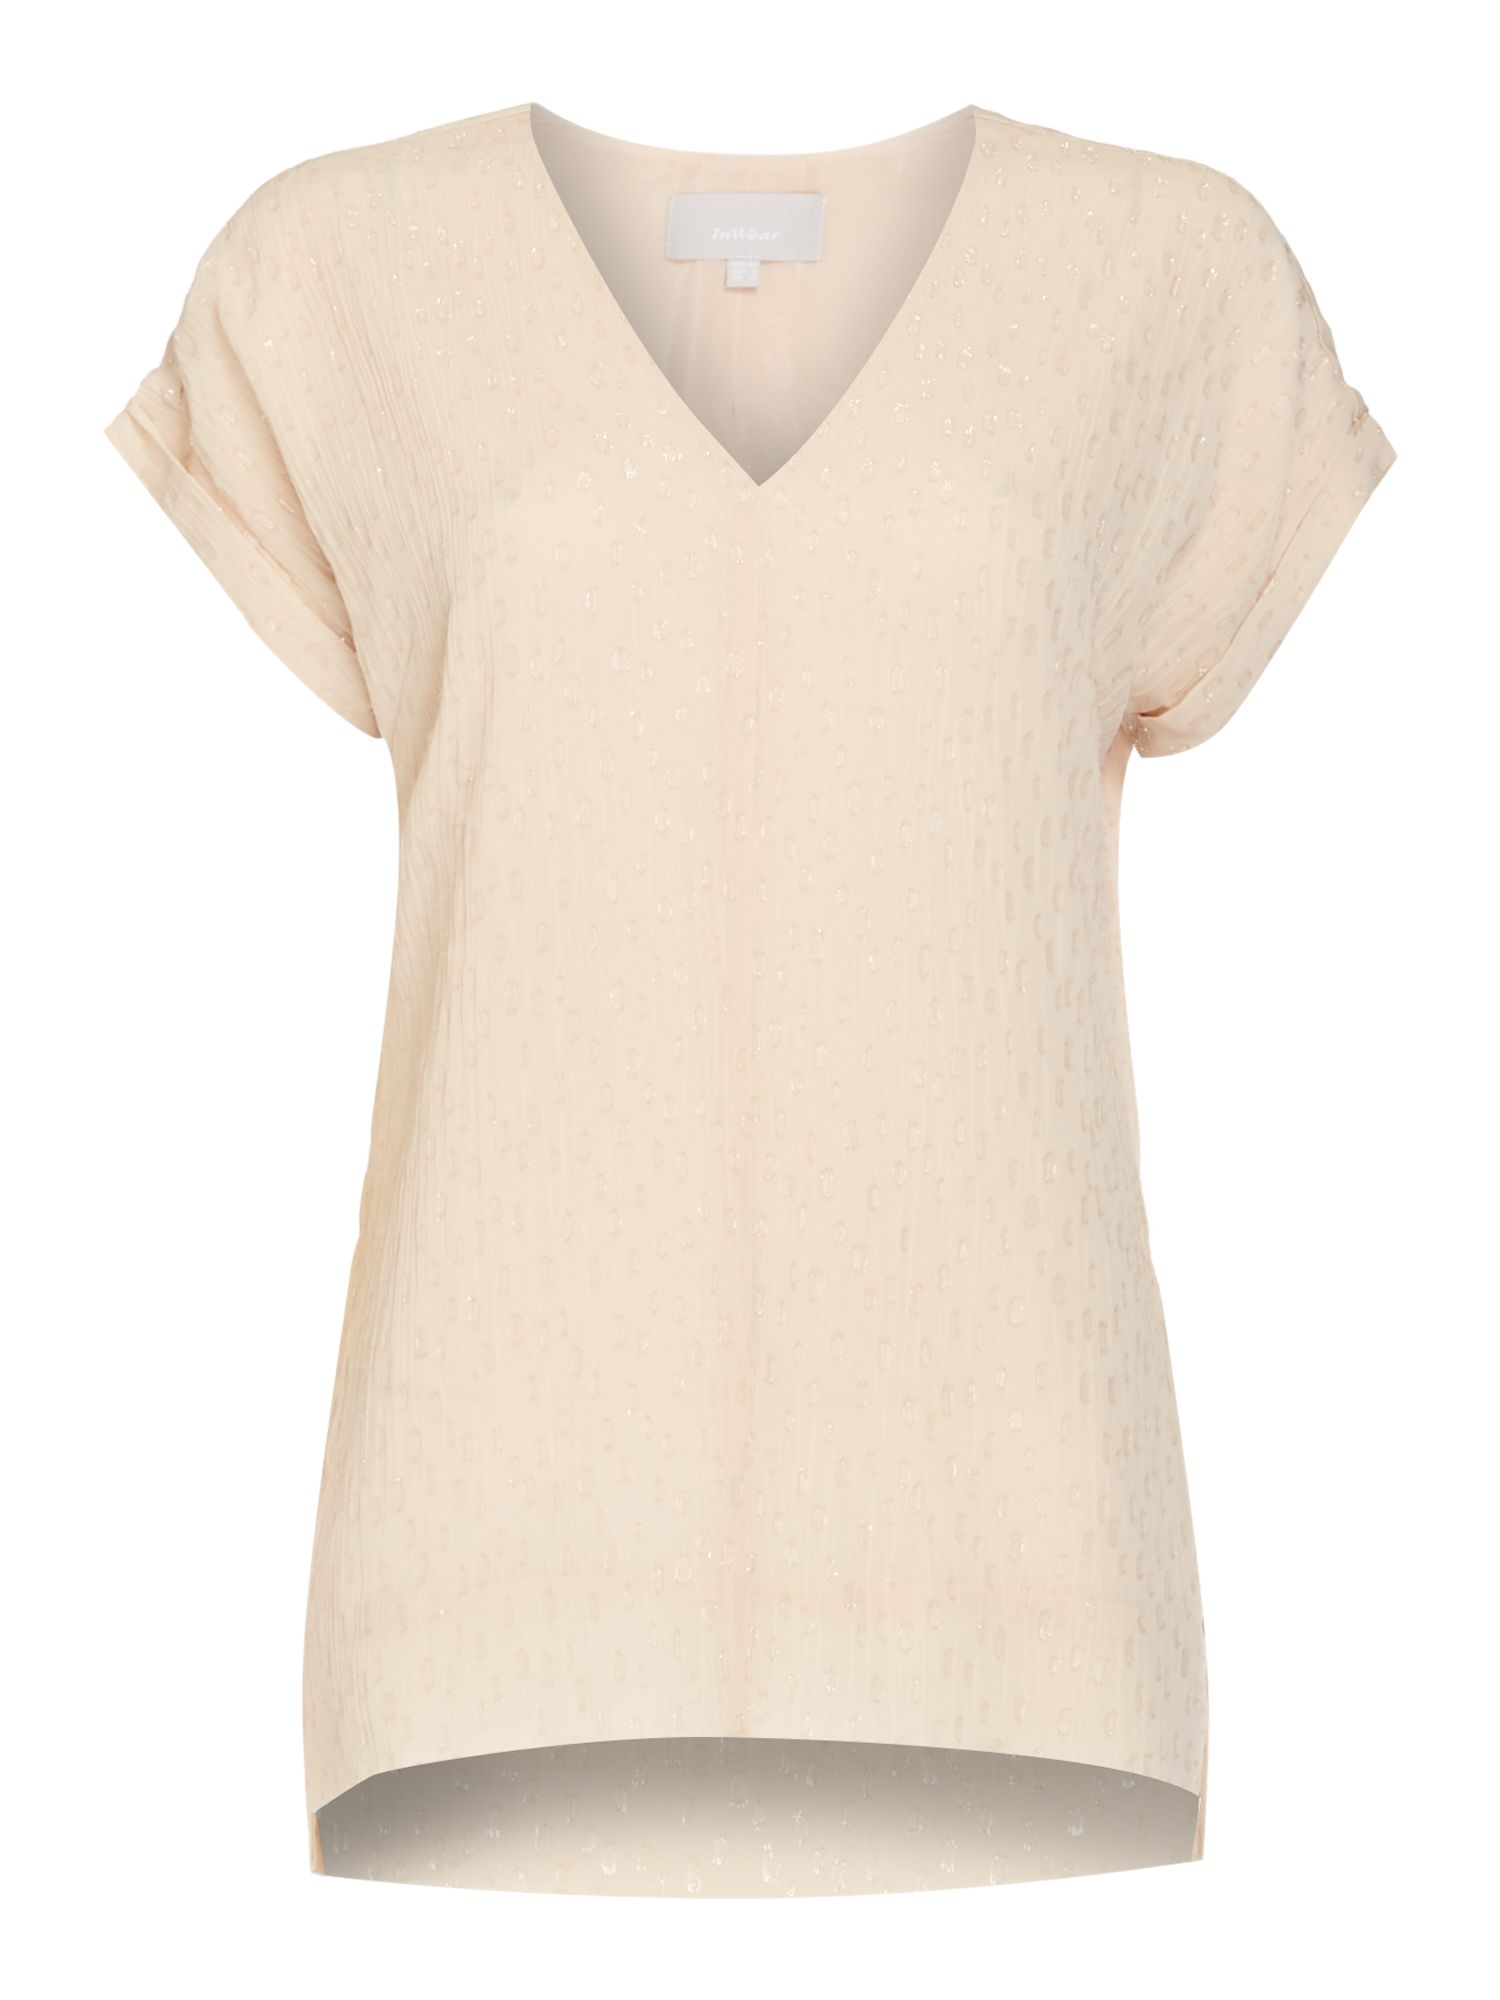 In Wear Fleck top with V neck, White